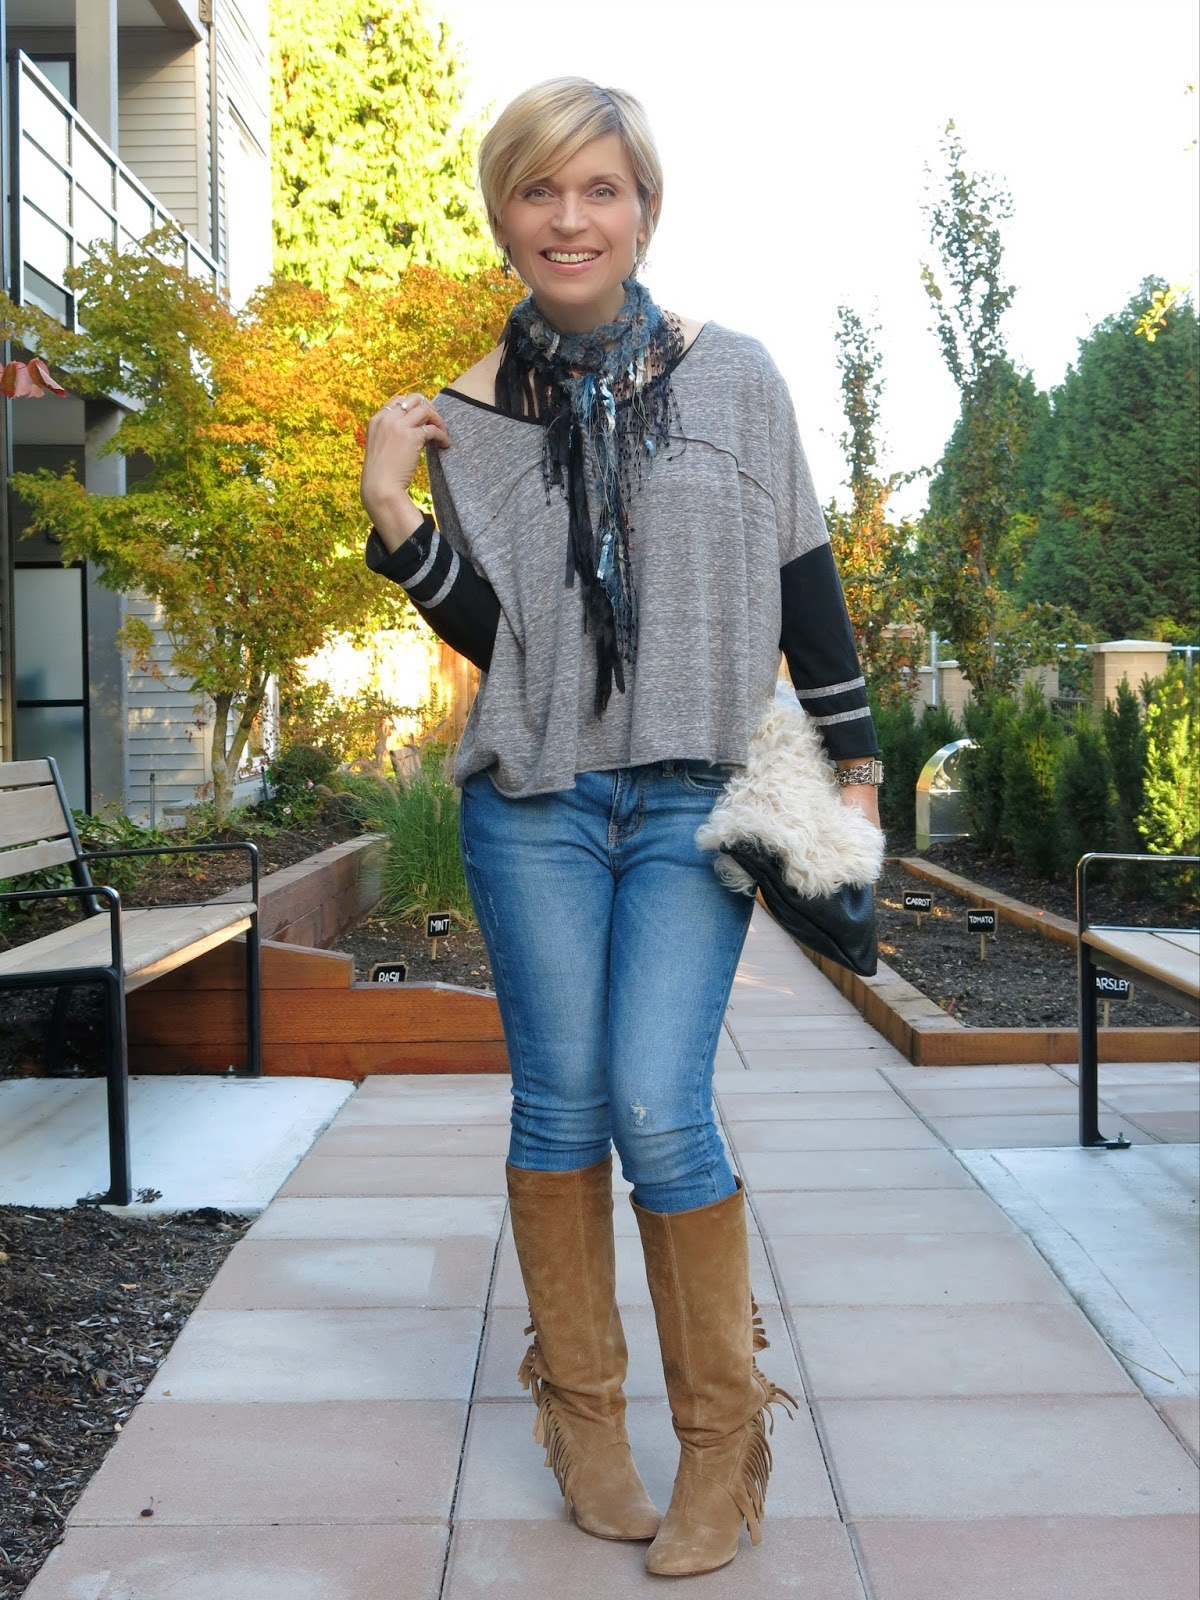 styling skinny jeans and a baseball-style tee with a sherpa clutch and fringy scarf and boots